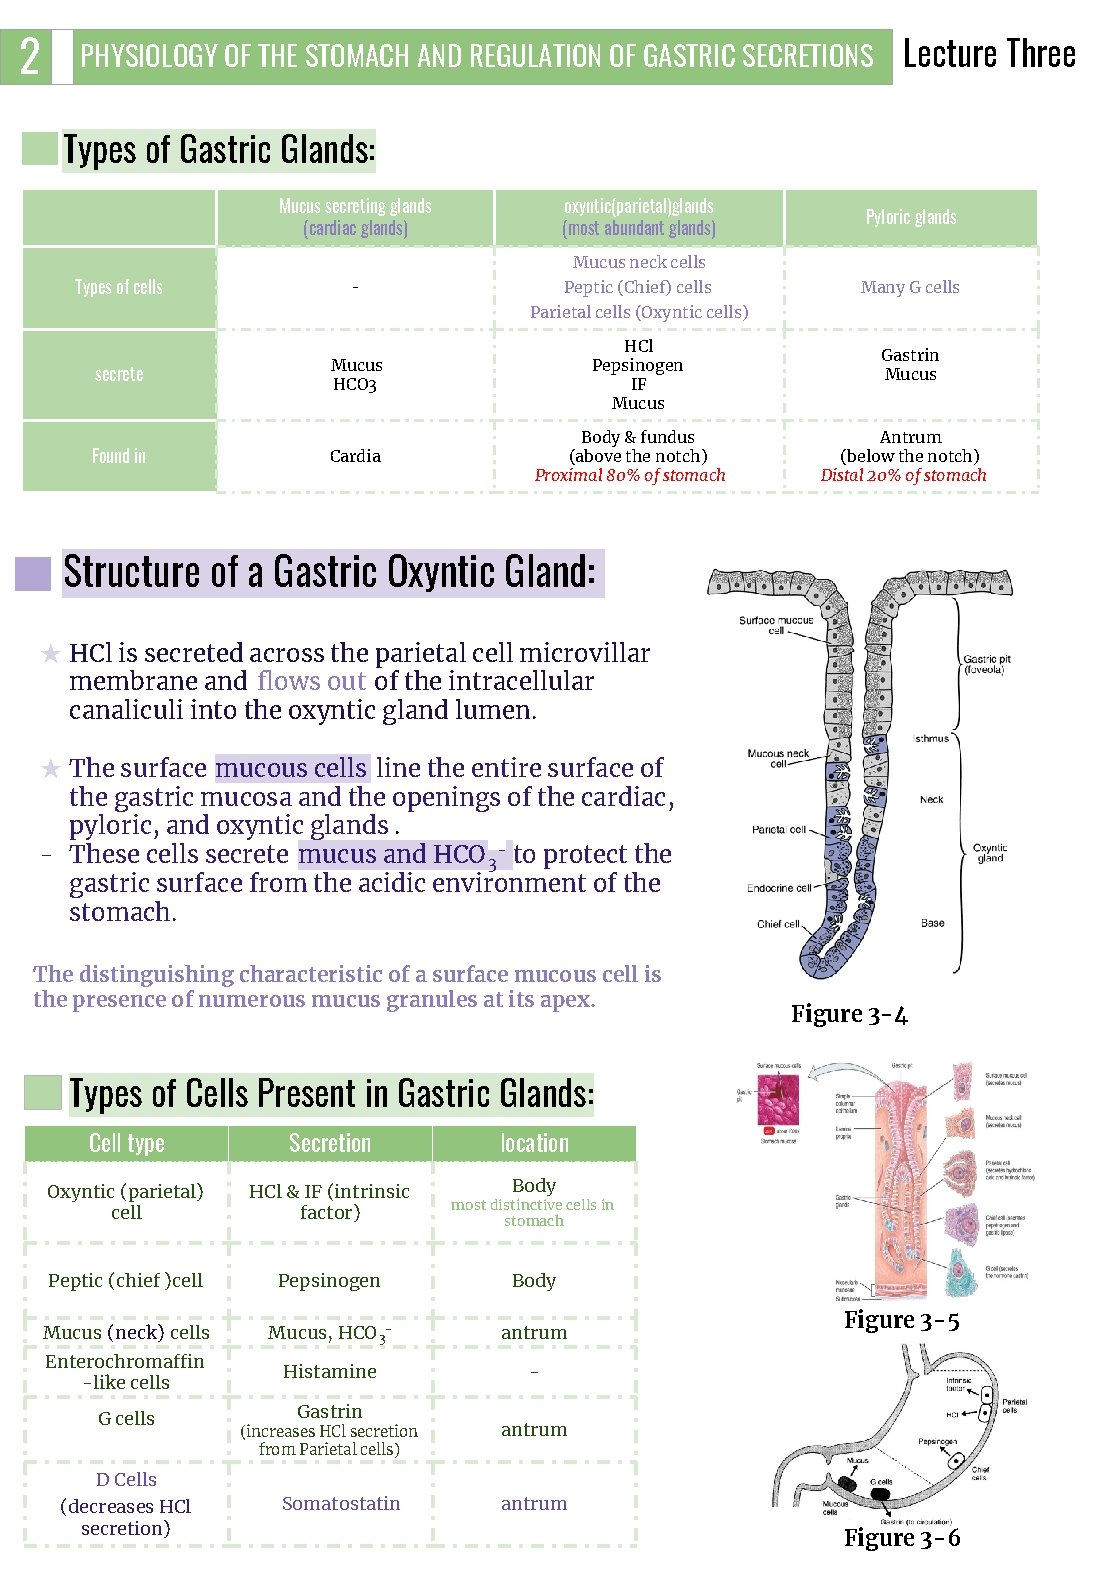 2 PHYSIOLOGY OF THE STOMACH AND REGULATION OF GASTRIC SECRETIONS Lecture Three Types of